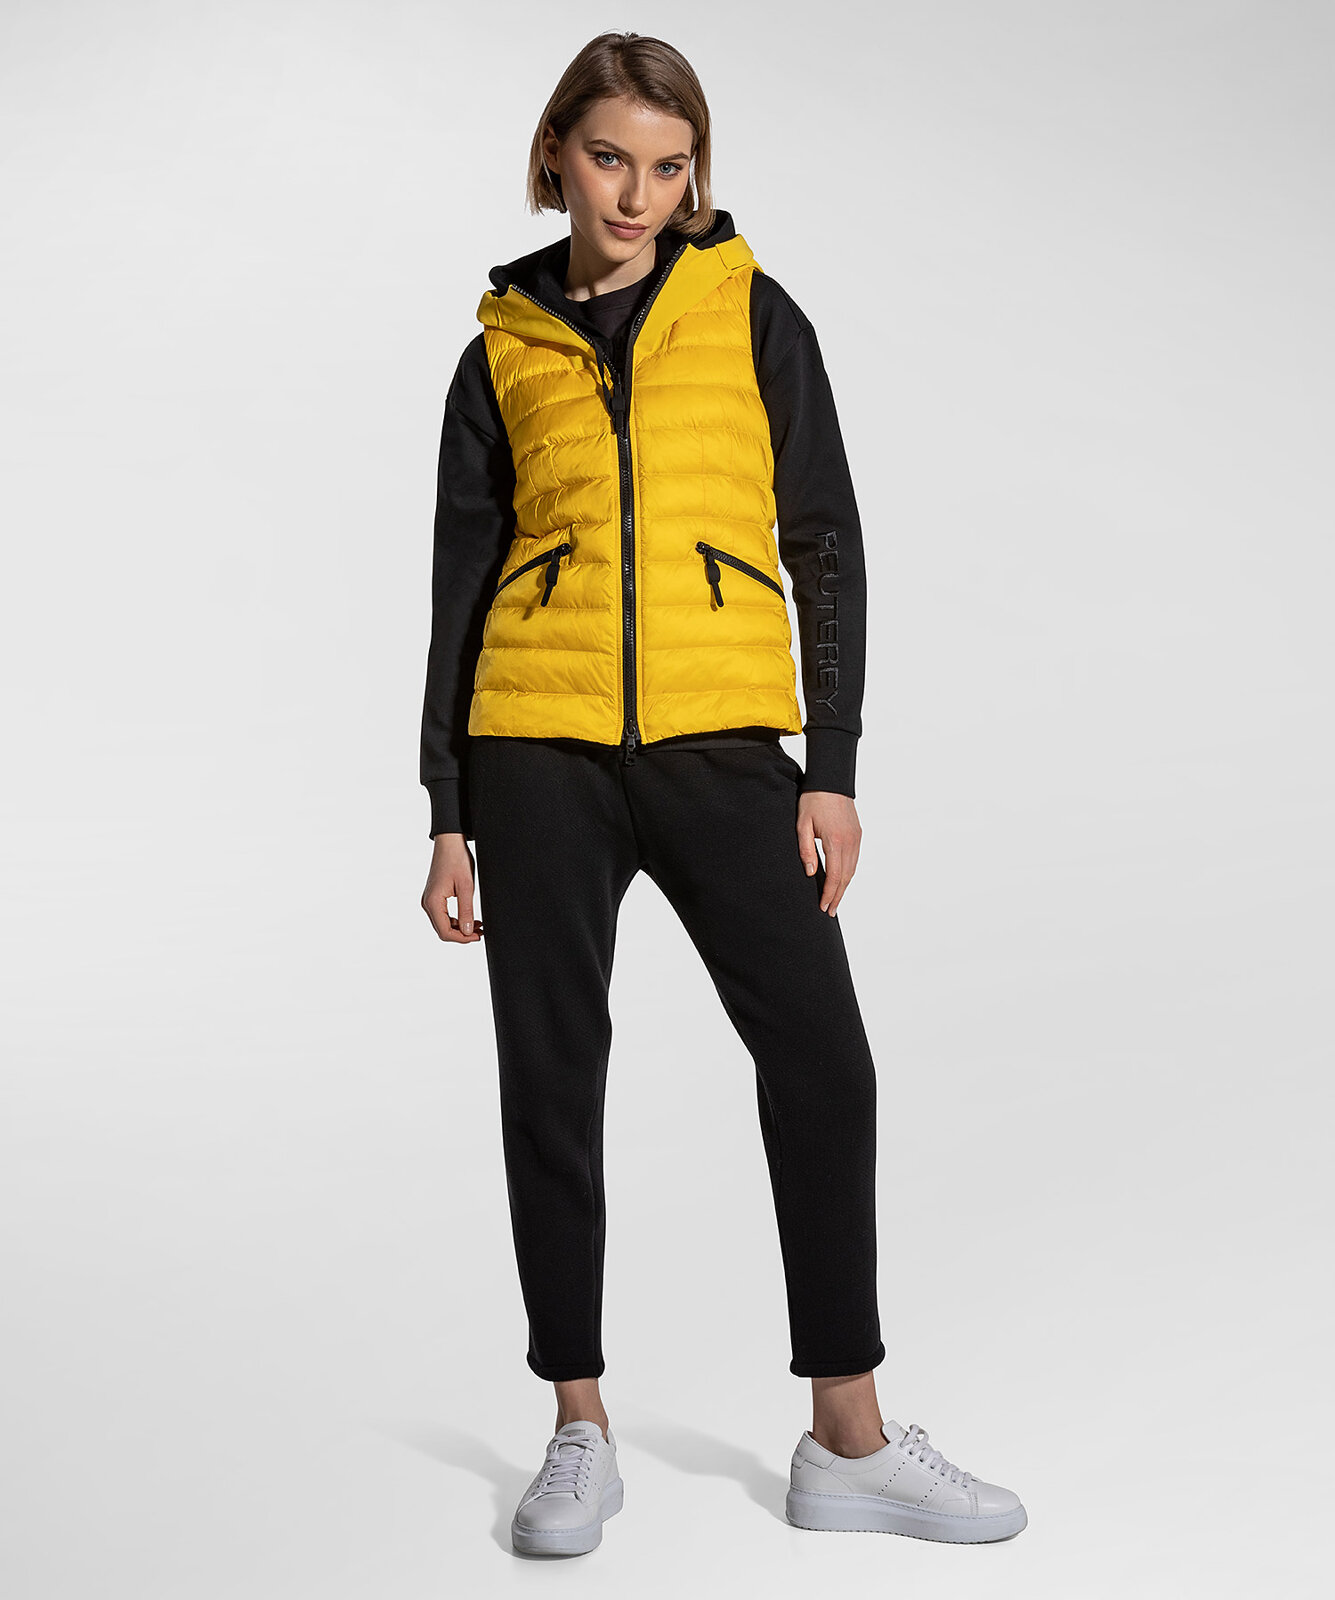 Slim Vest And In Primaloft - Peuterey